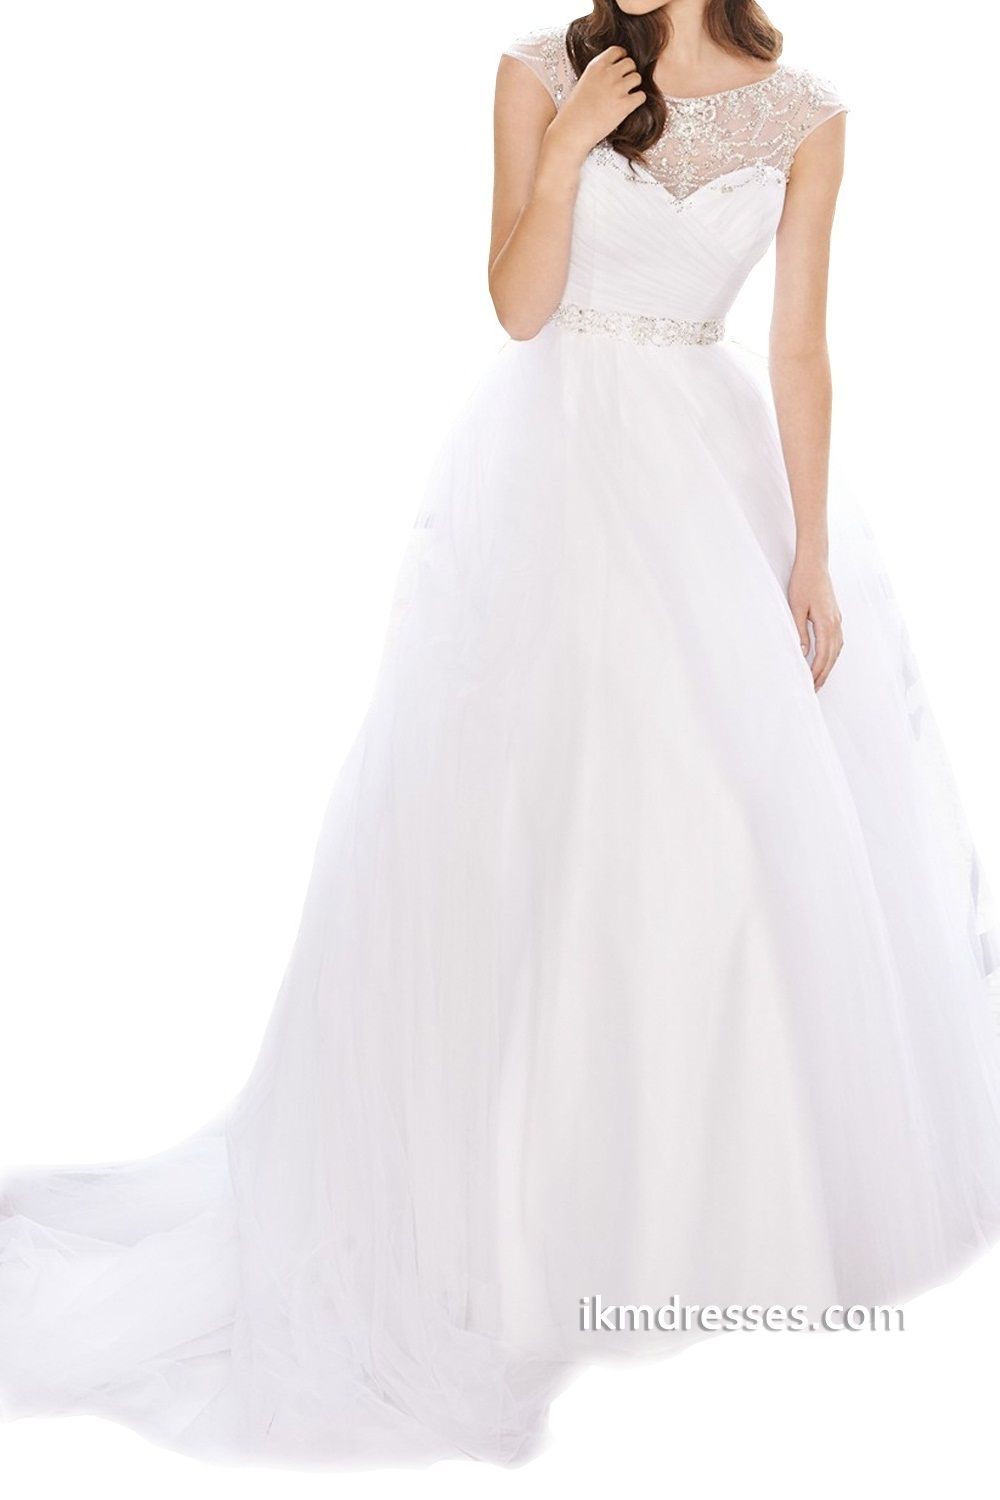 Ball Gown Beading Pleat Wedding Dresses http://www.ikmdresses.com/Ball-Gown-Beading-Pleat-Wedding-Dresses-p89110